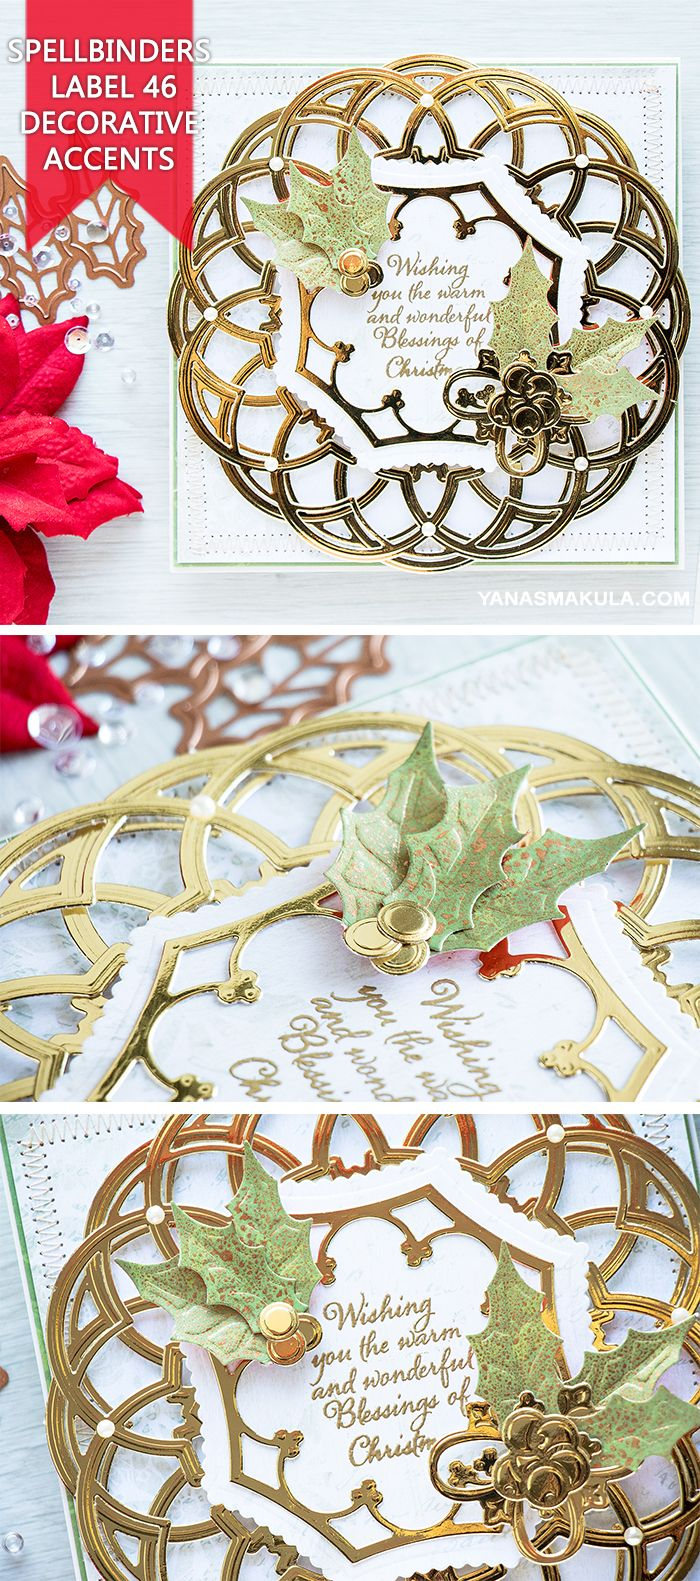 Create classic Christmas card with Spellbinders Label 46 Decorative Accents dies. For details and video tutorial, visit http://www.yanasmakula.com/?p=55805